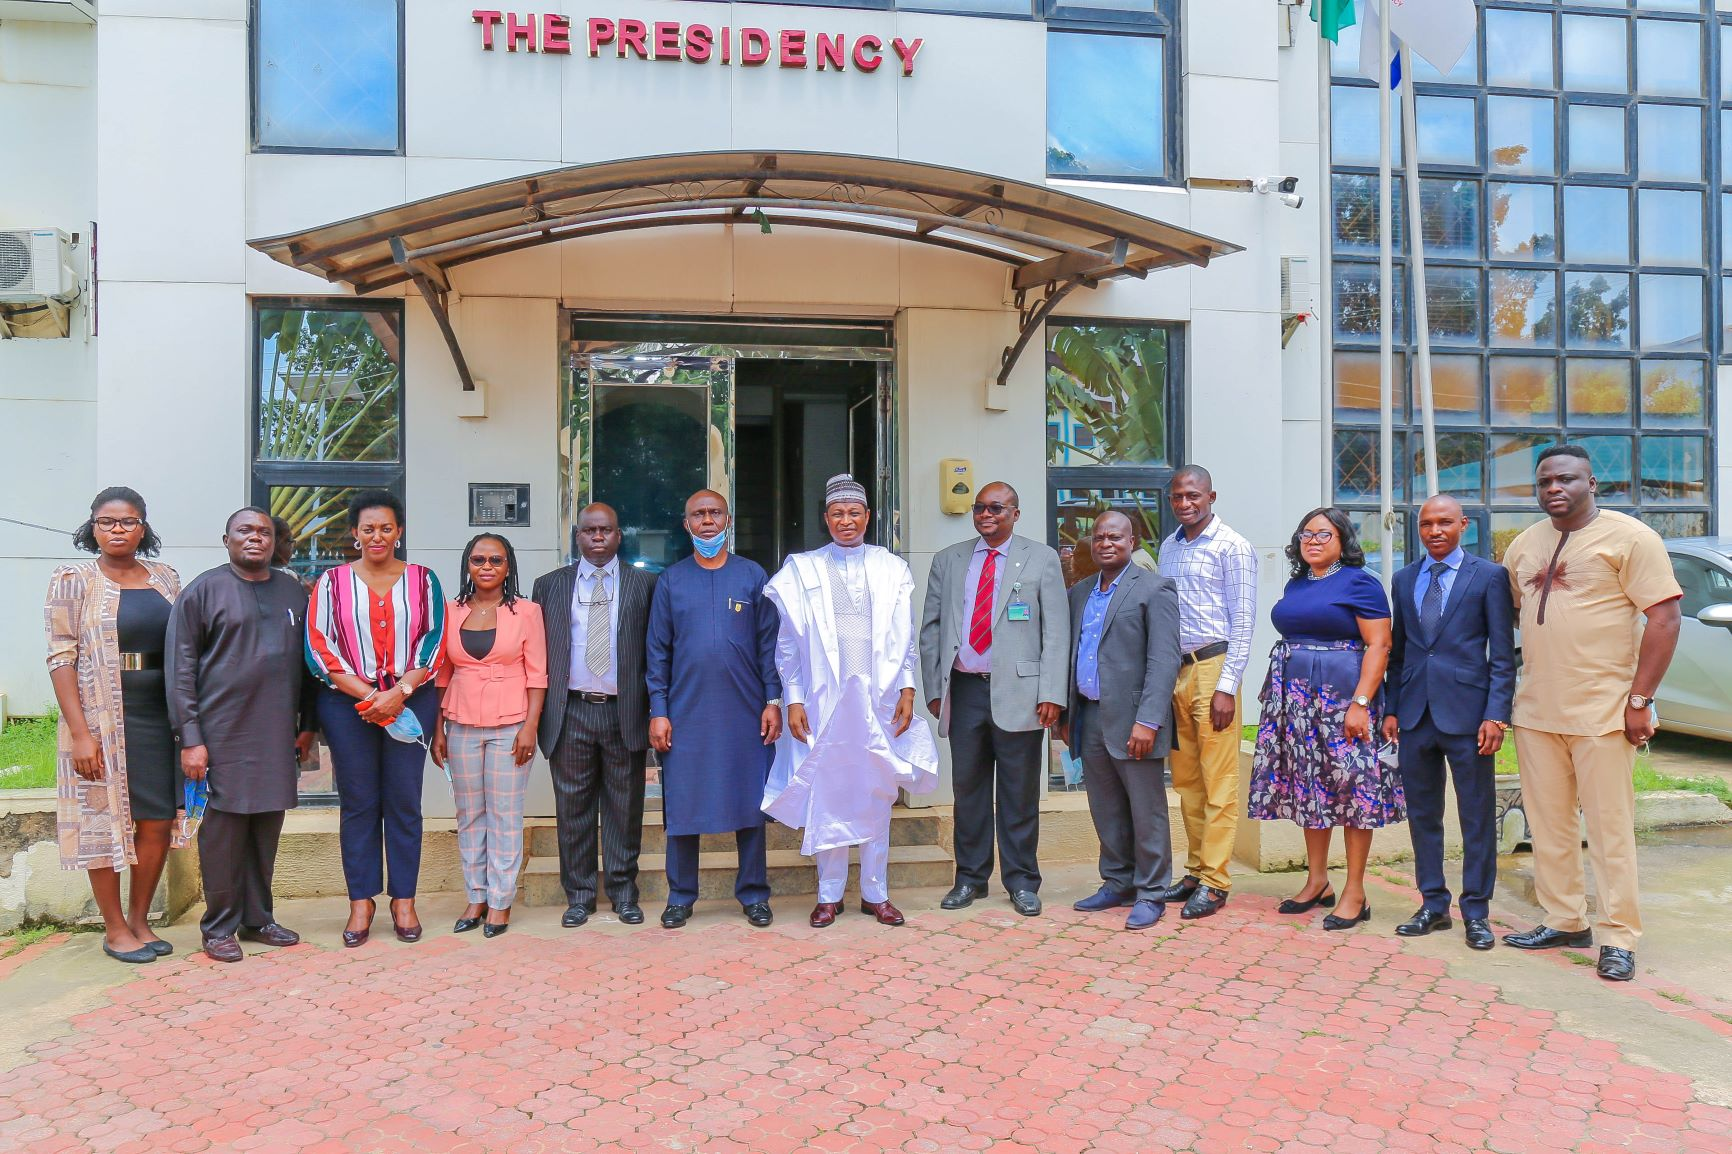 1-MEDICAL-COMMITTEE-INAUGURATION-James-Bamidele-5013